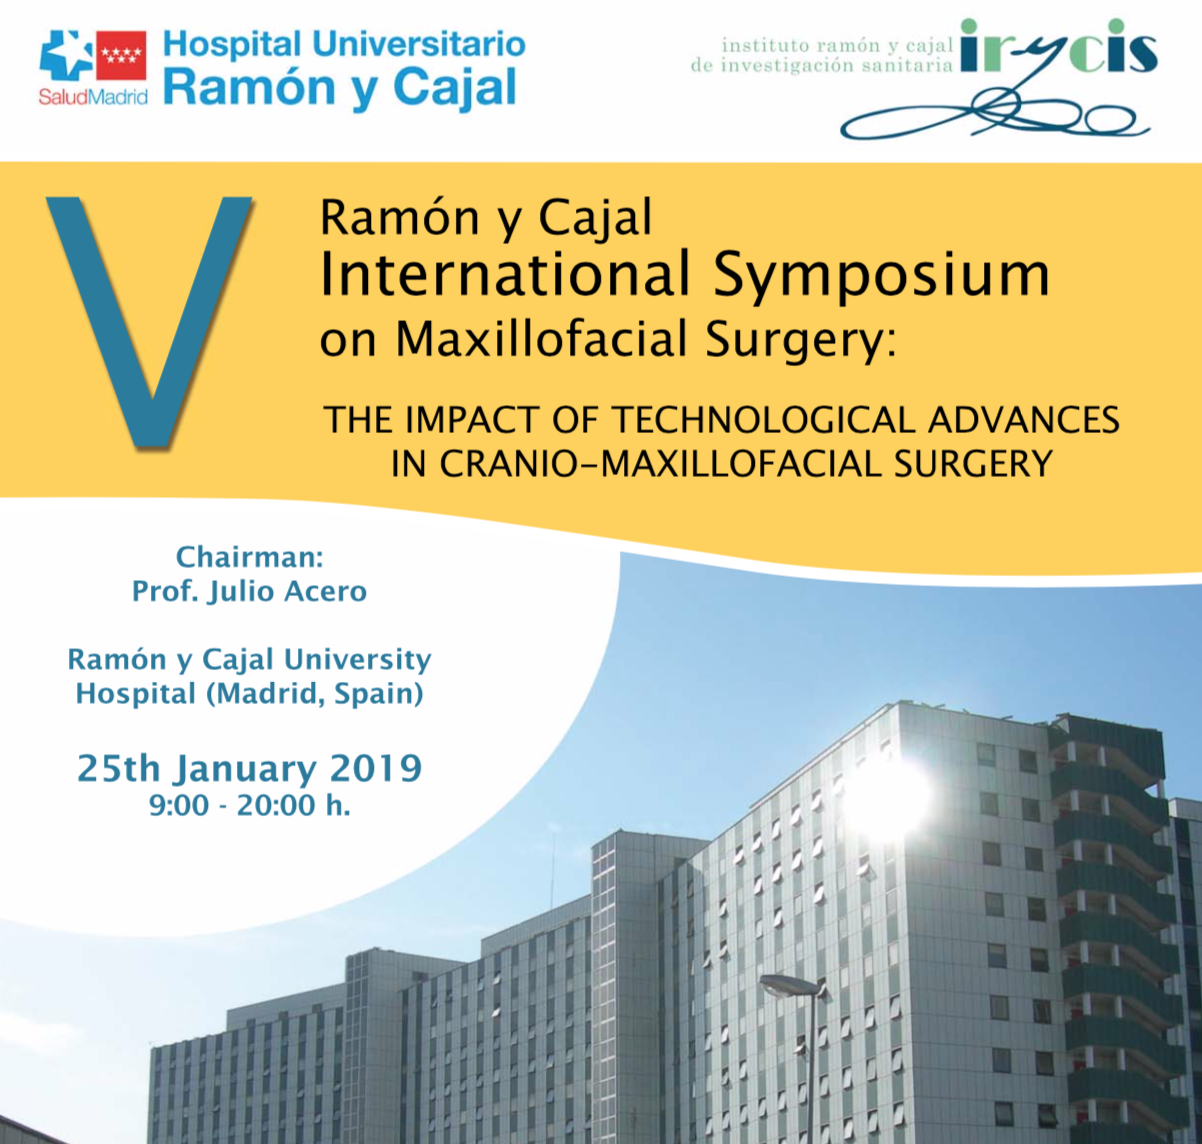 International Symposium on Maxillofacial Surgery